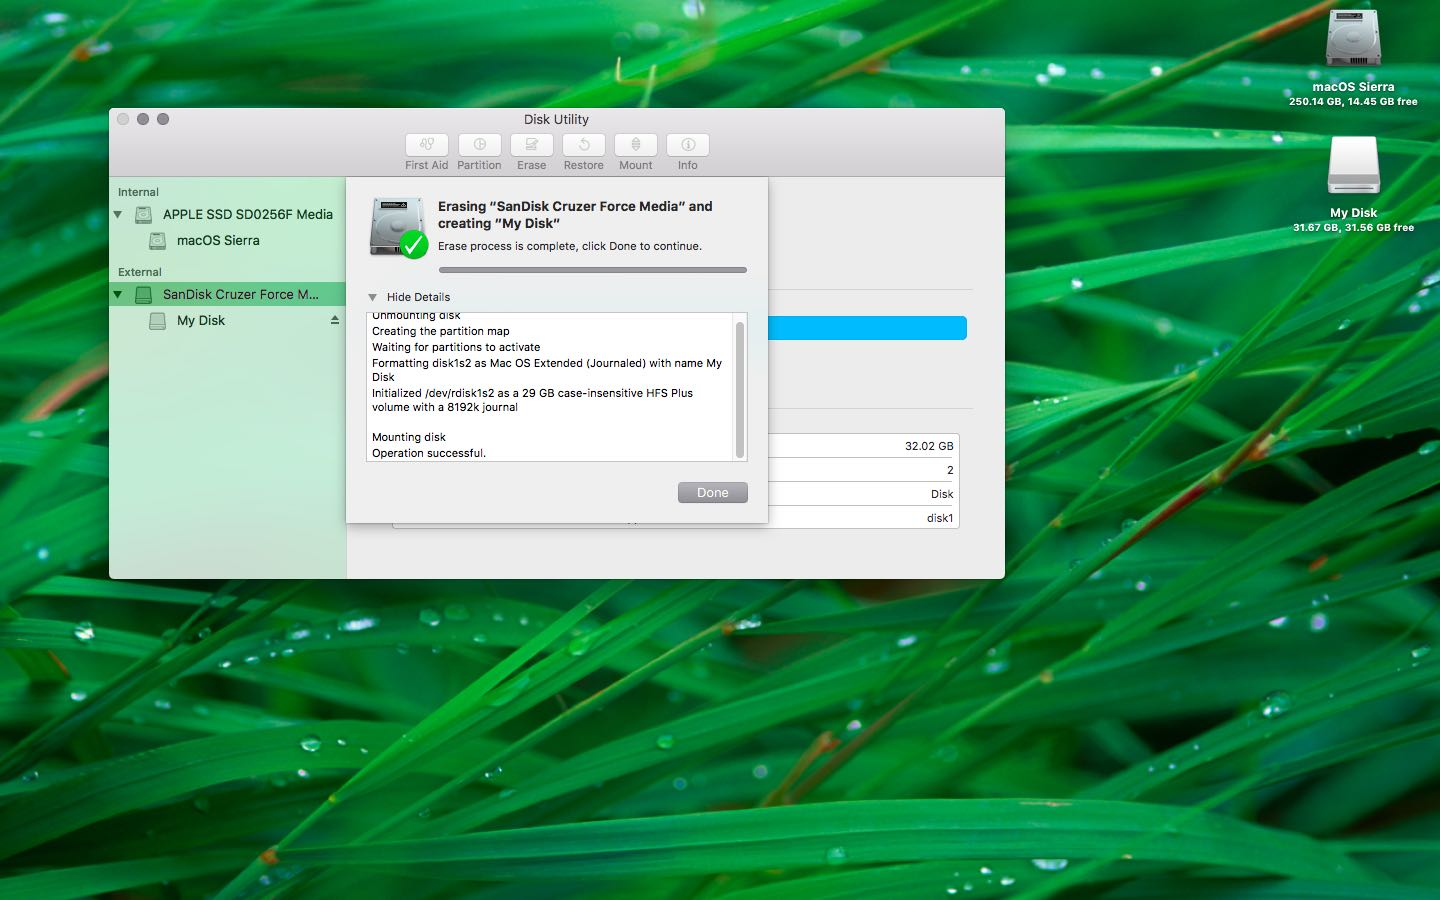 How to erase and format external disks on your Mac